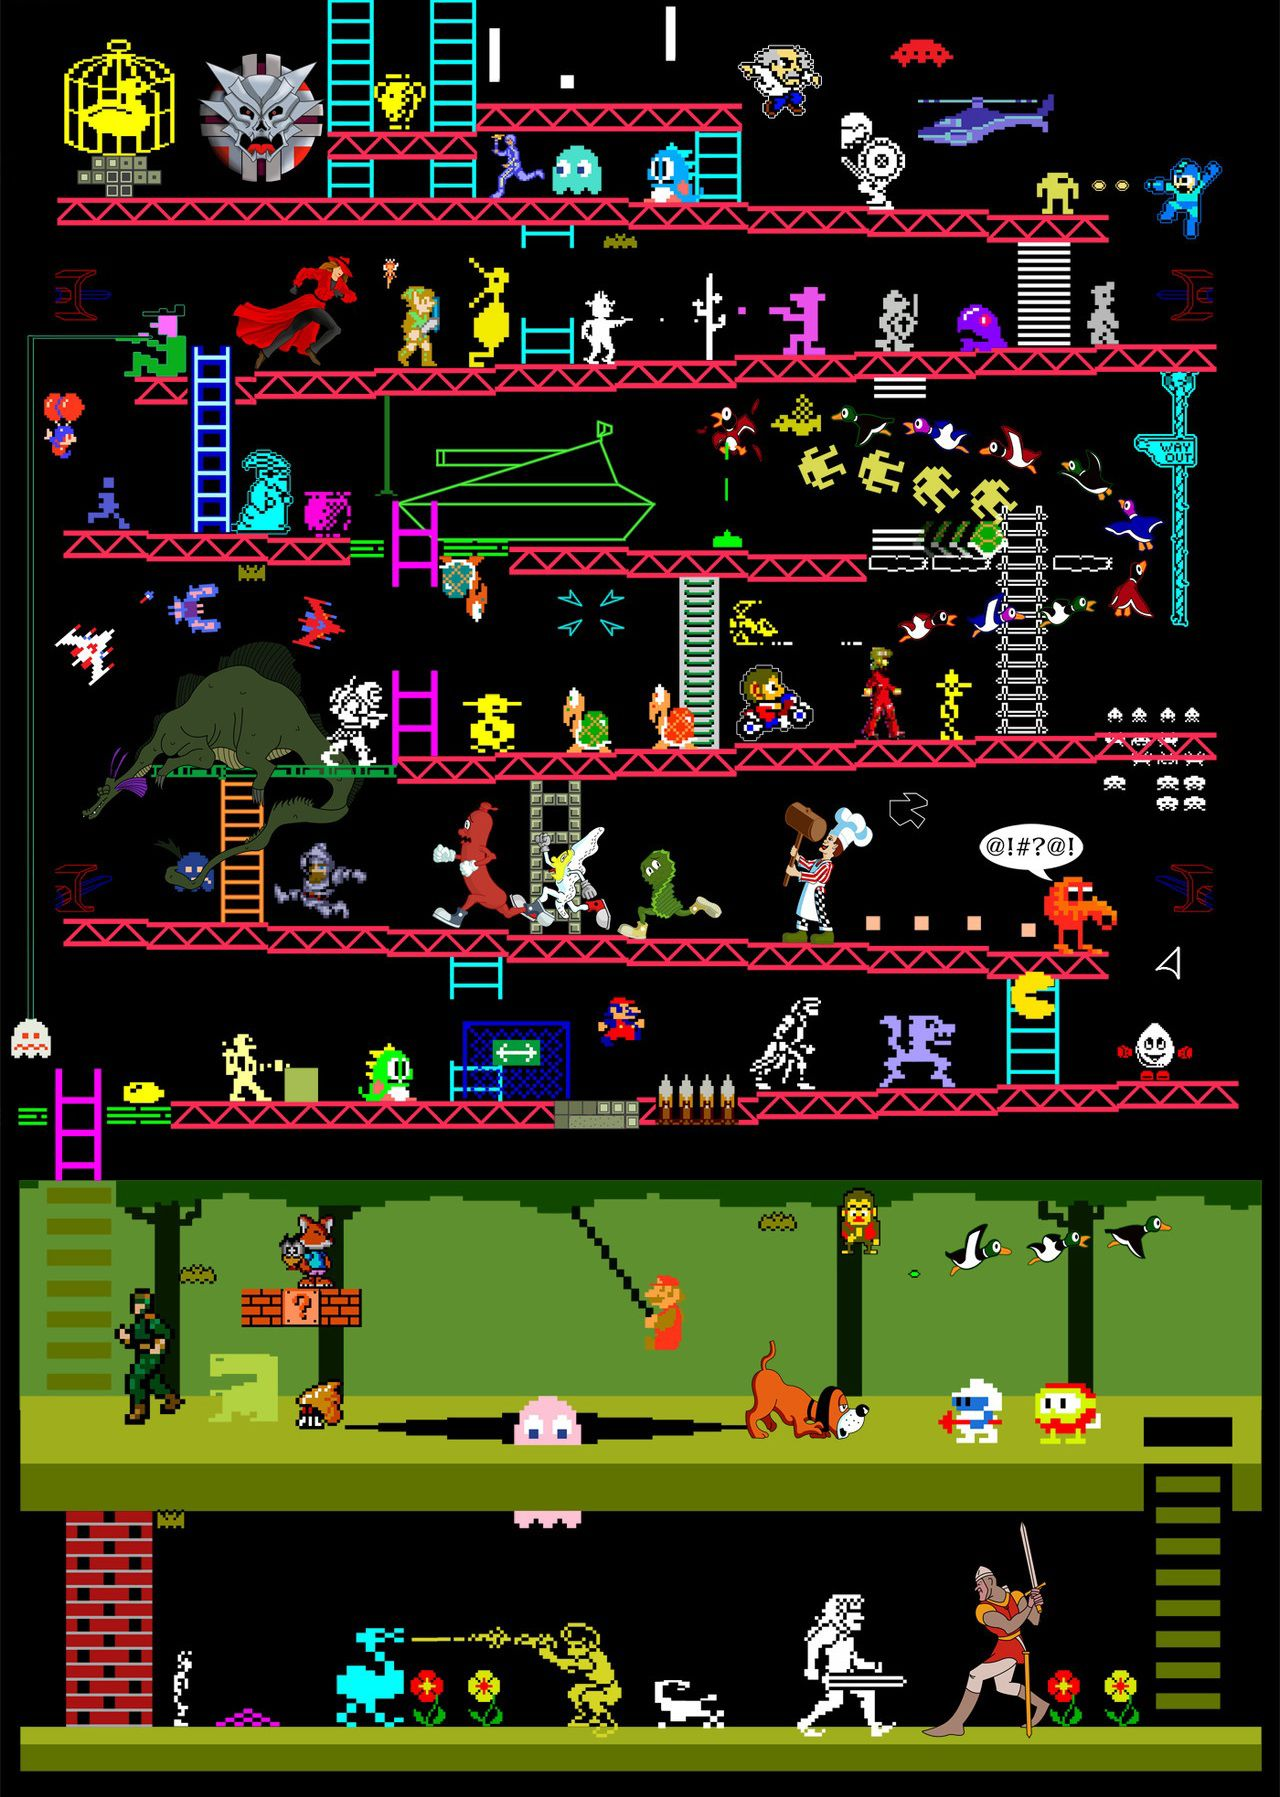 Retro video games character mash-up poster